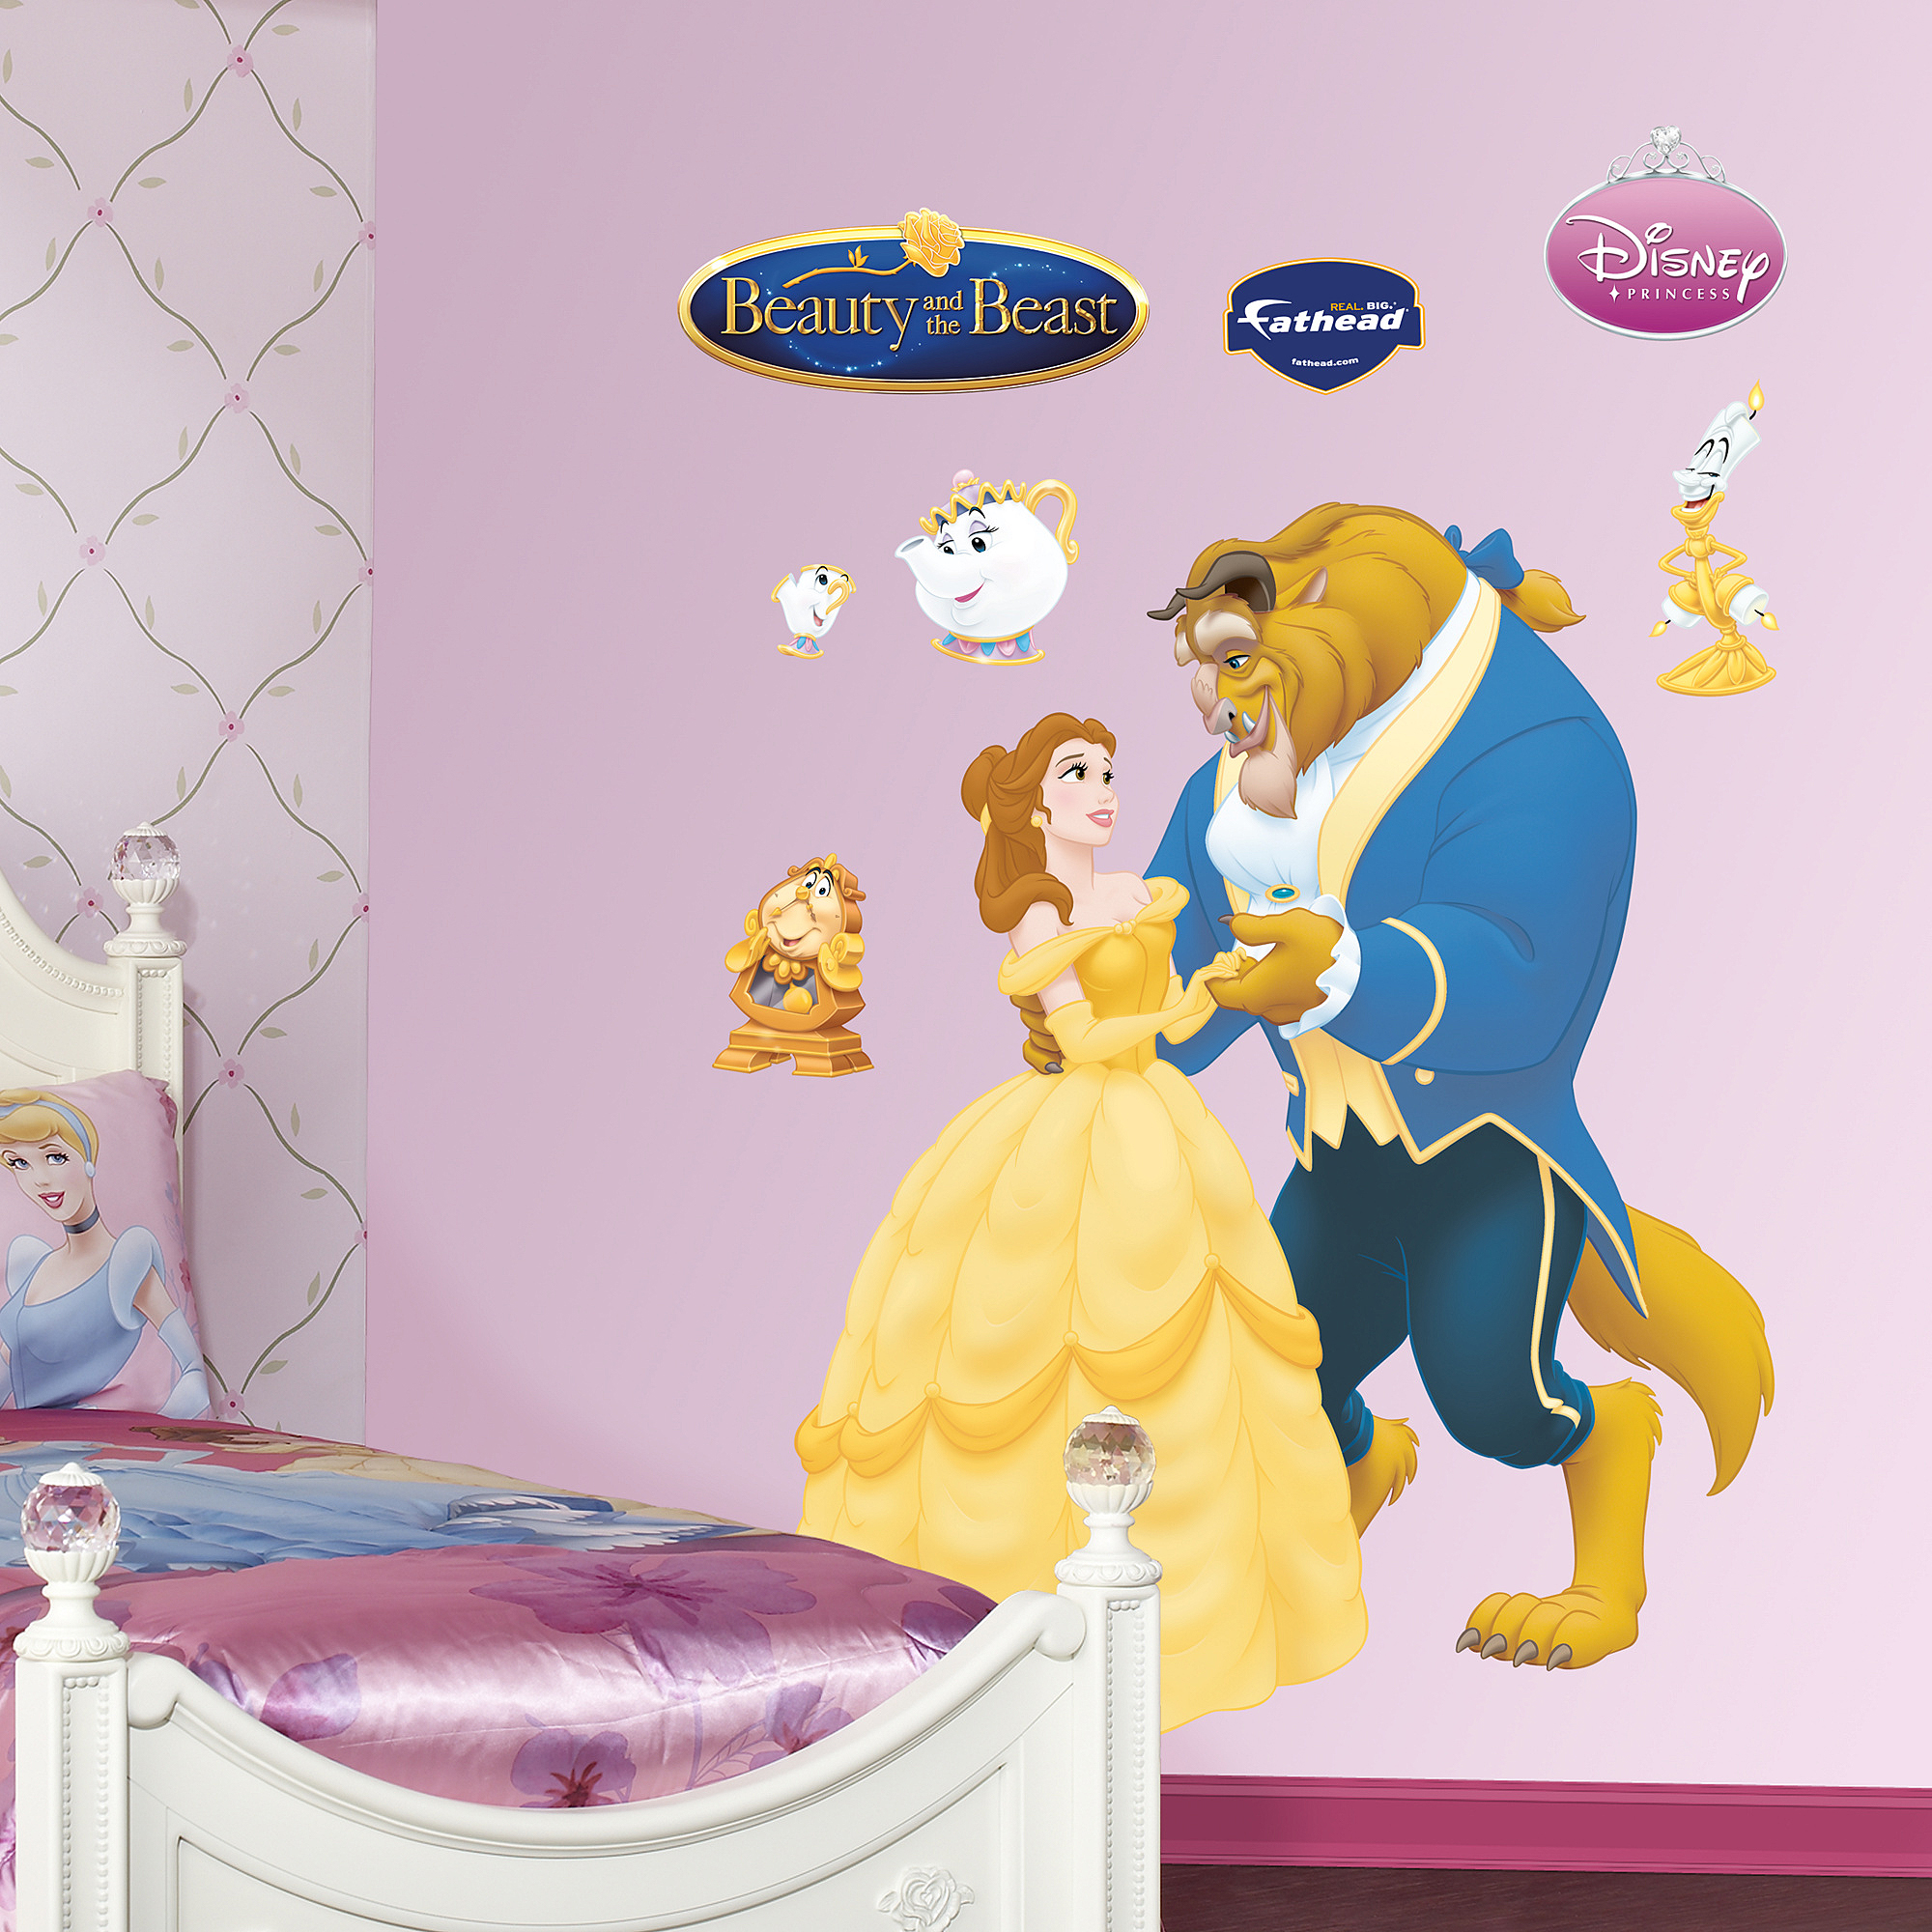 Beauty and the Beast Fathead